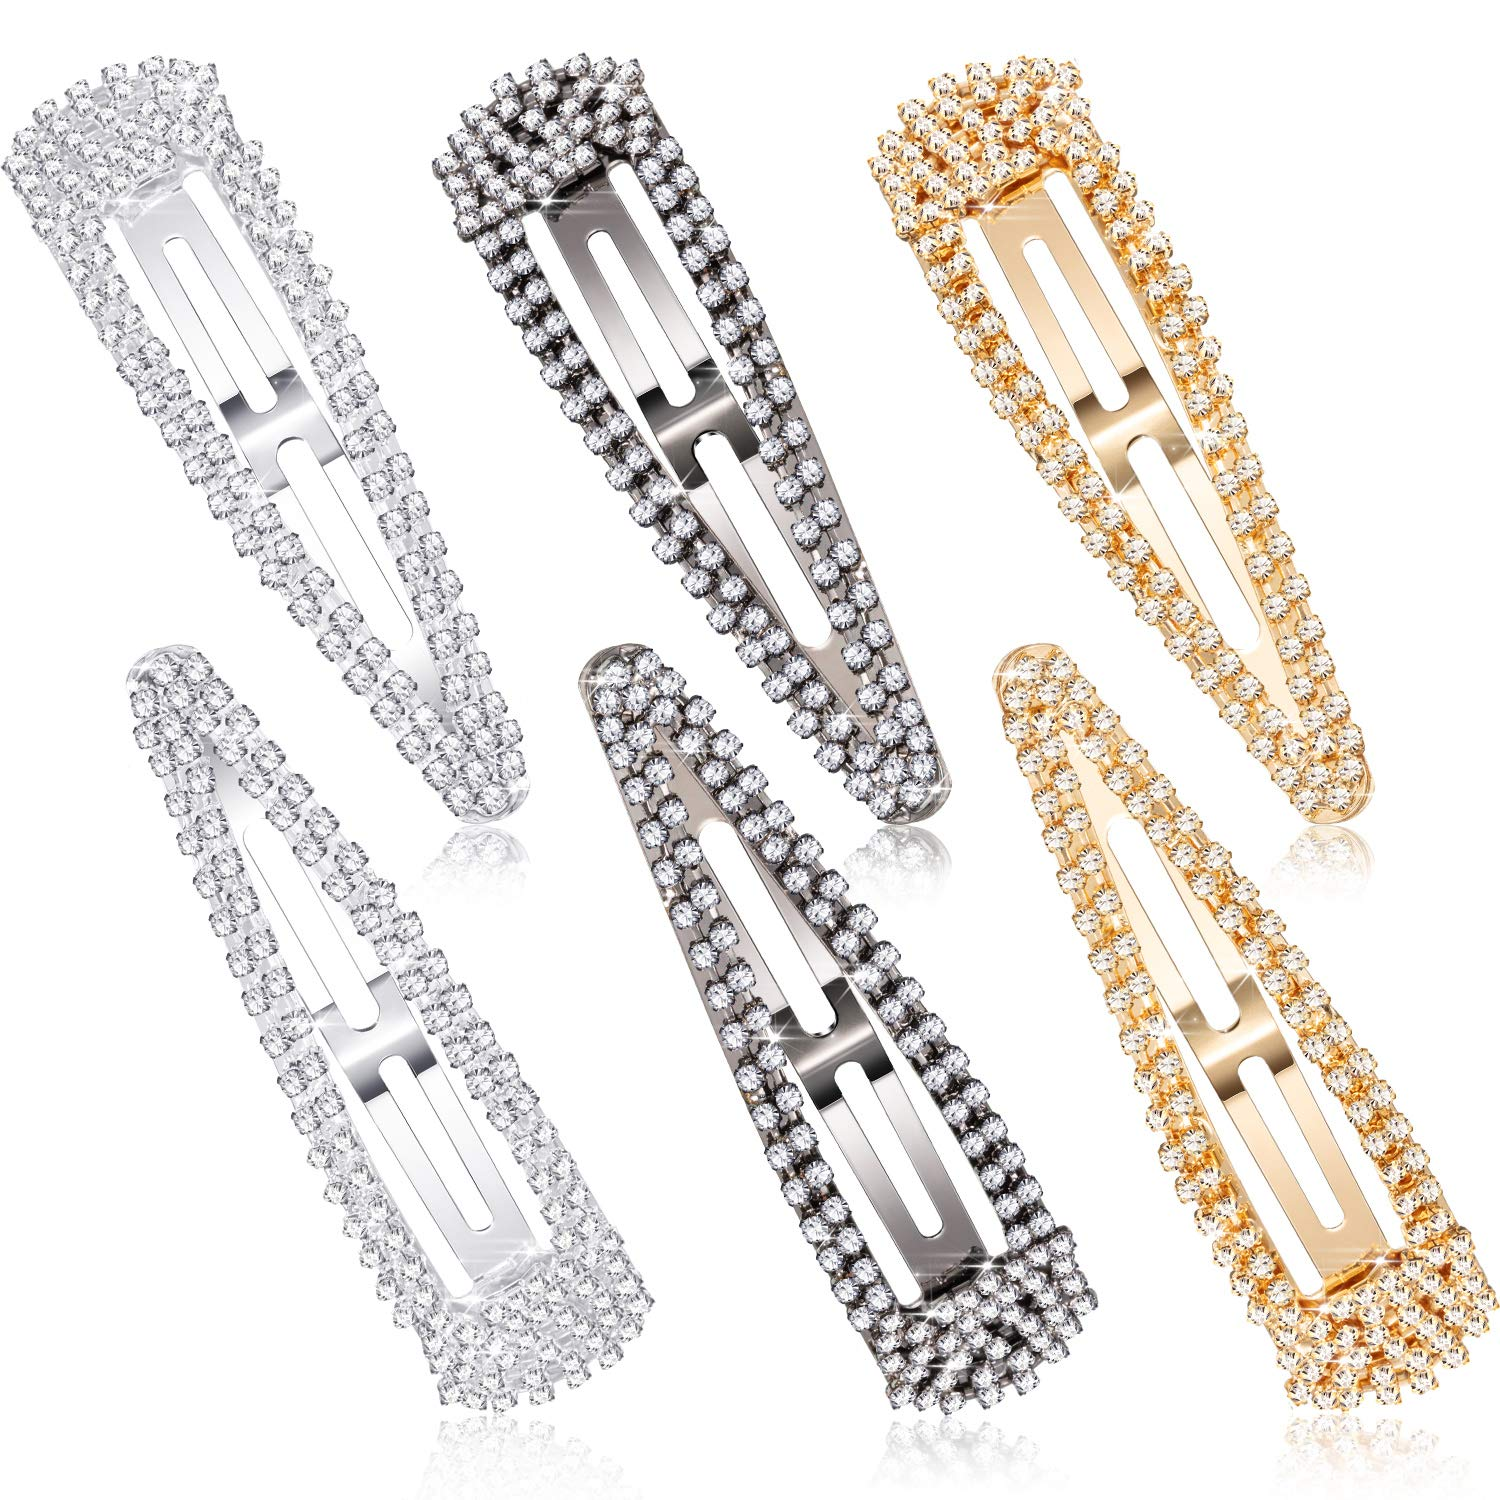 6 Pieces Rhinestone Hair Clips 3 Inch Snap Hair Barrettes Bridal Hair Barrettes Pins for Women Girls Wedding Hairpins Hair Accessories (Black, Silver, Gold)